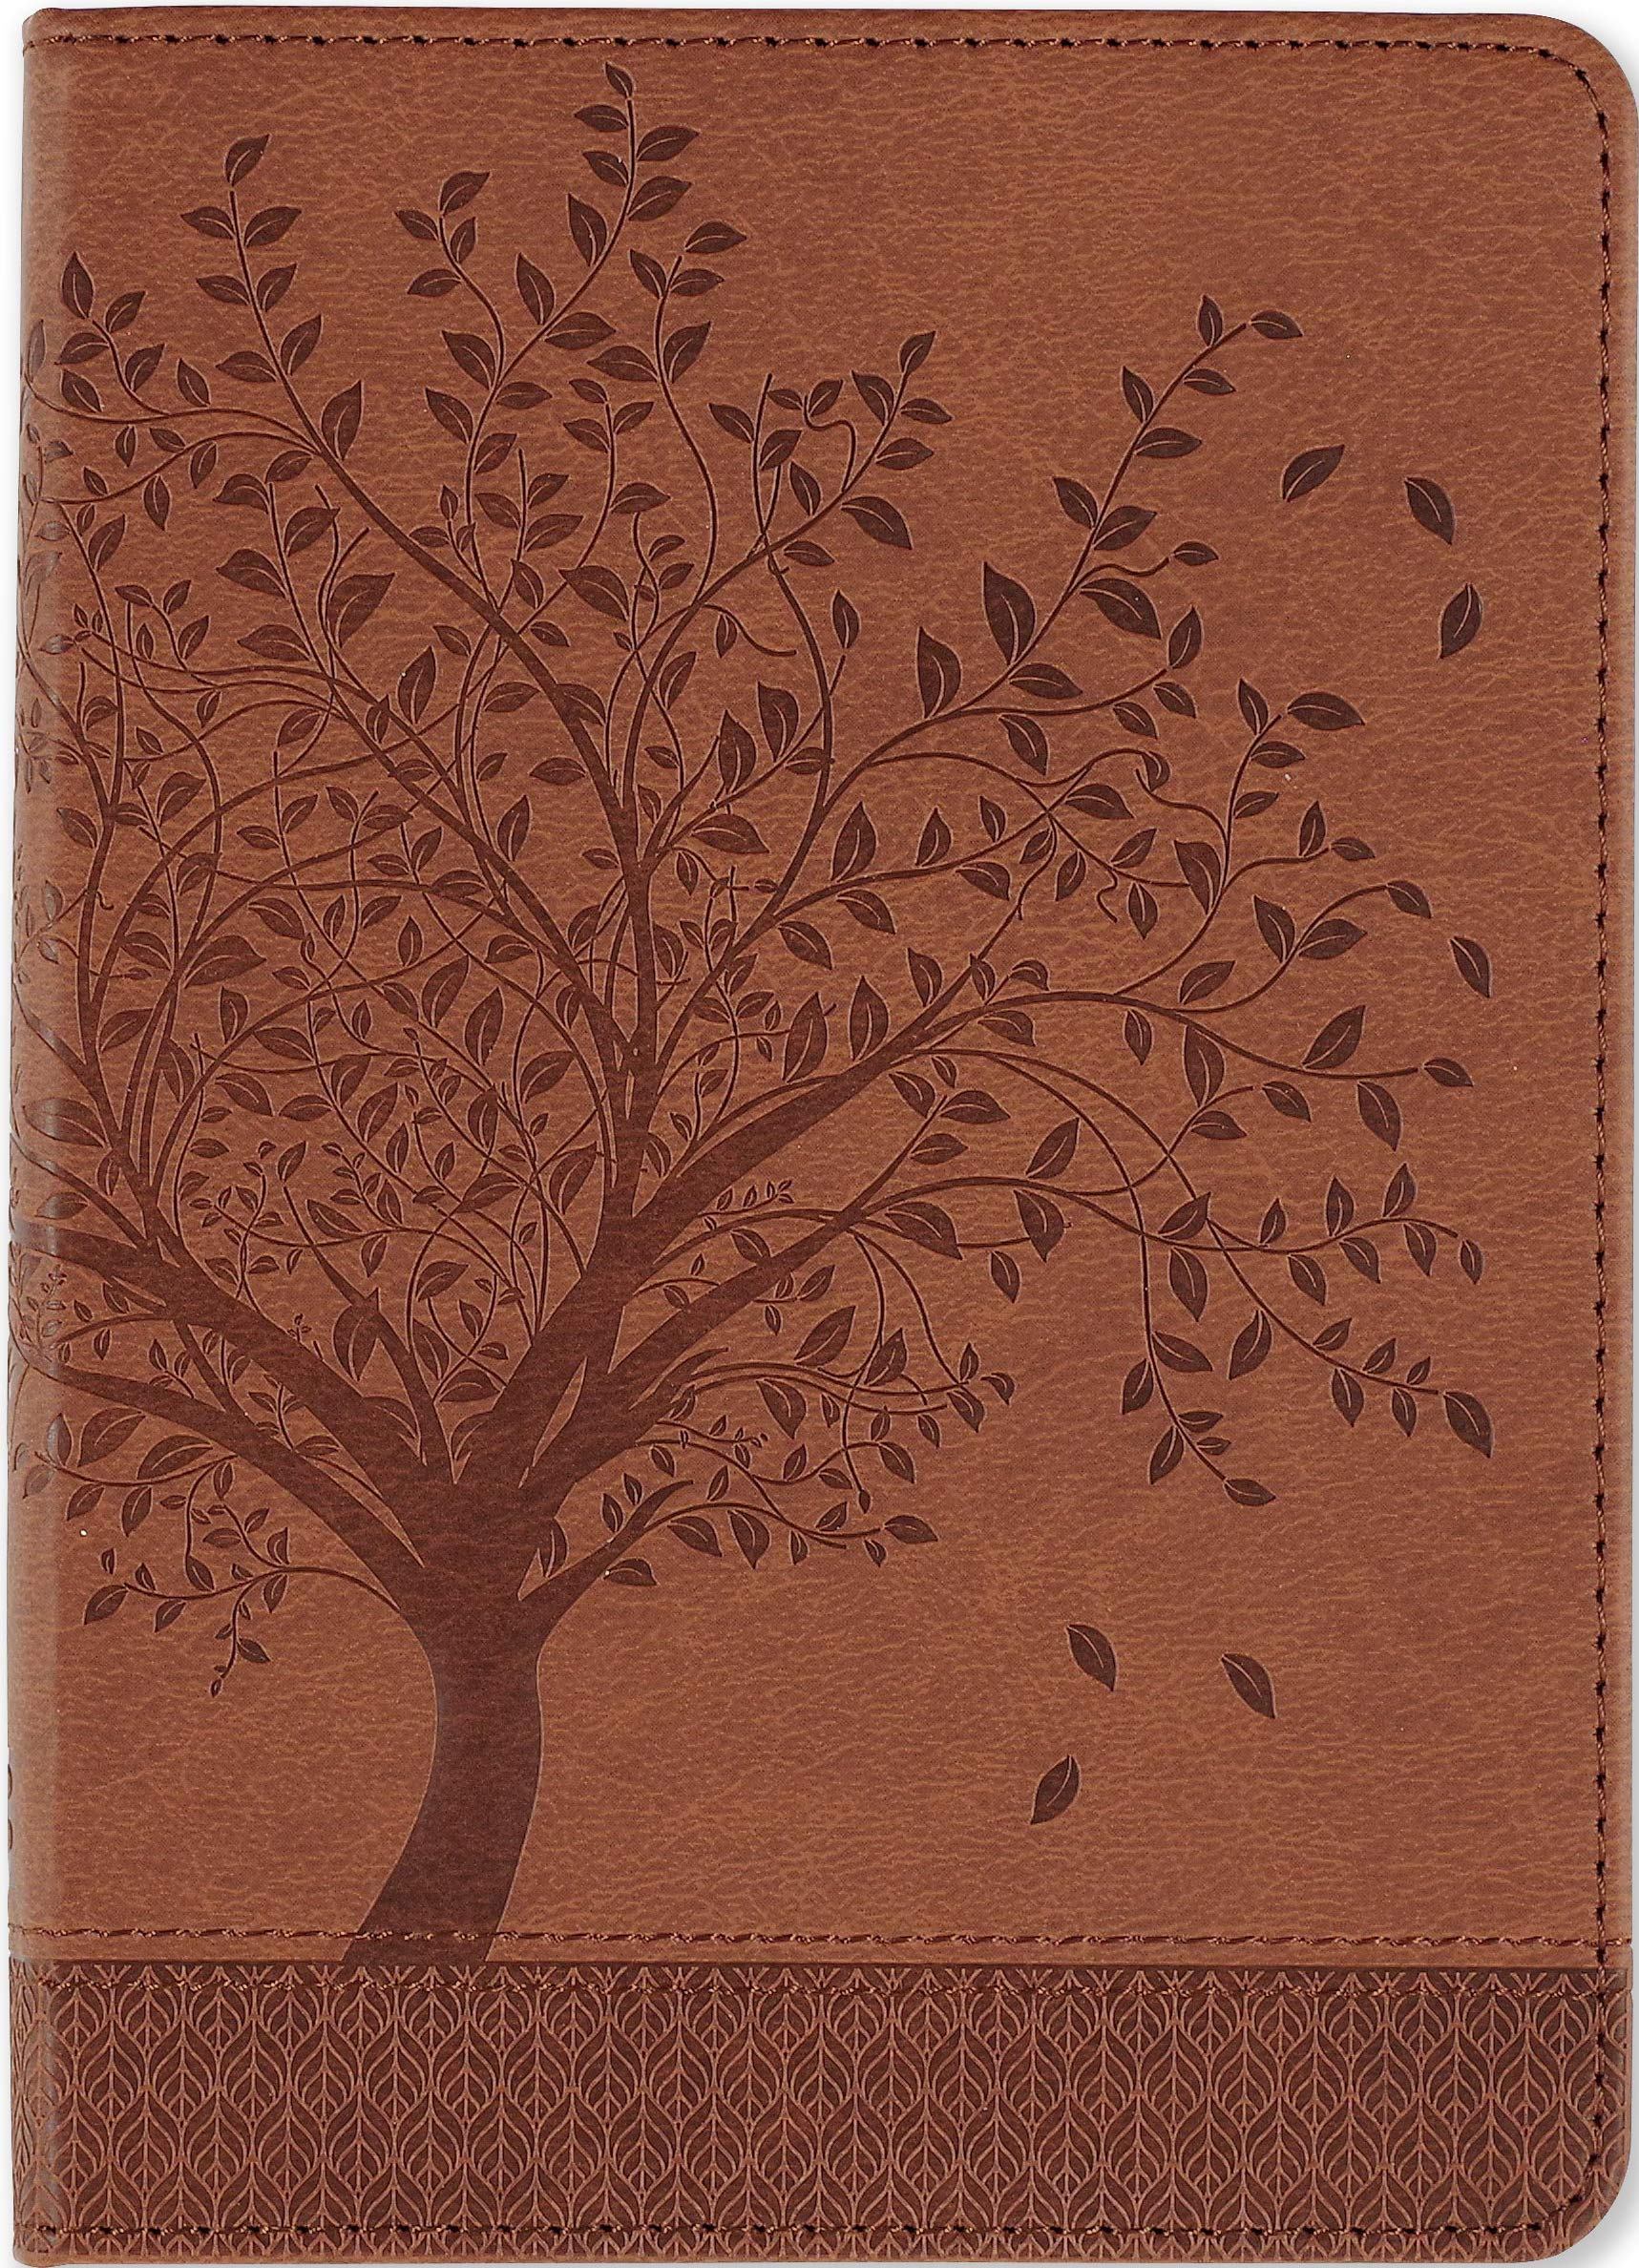 Tree Journal Vegan Leather Notebook product image